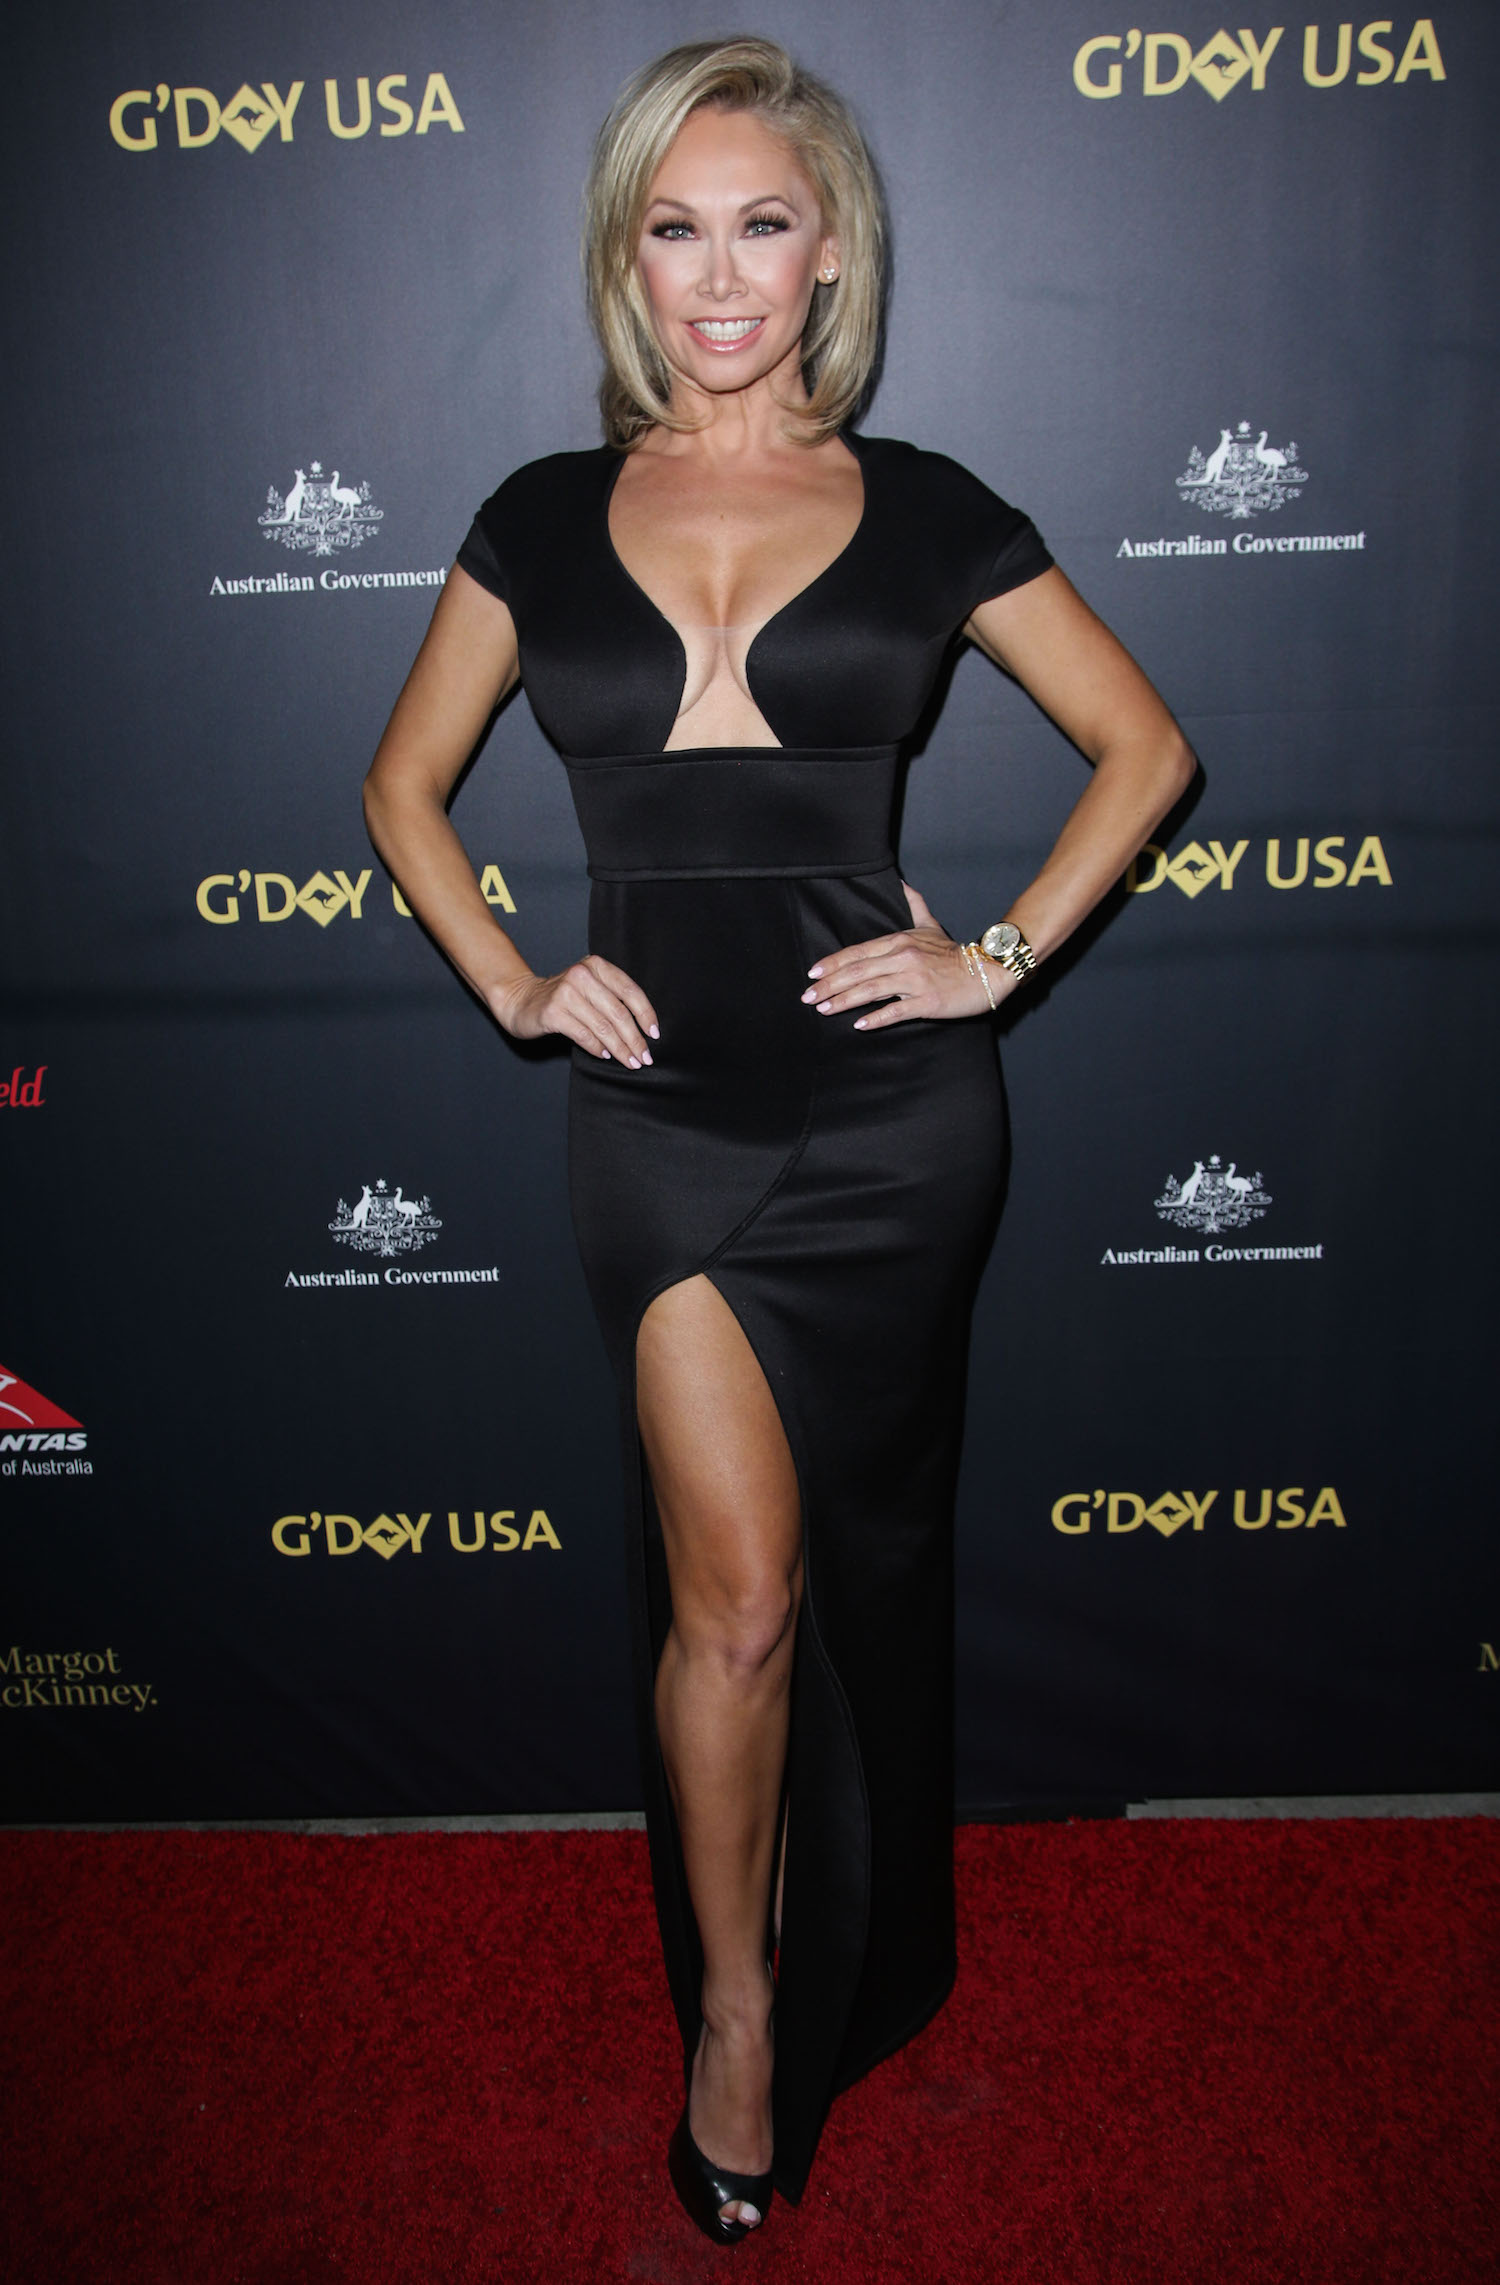 Kym Johnson  Robert Herjavec Get Sexy on USA Gala Dinner Red Carpet PHOTOS